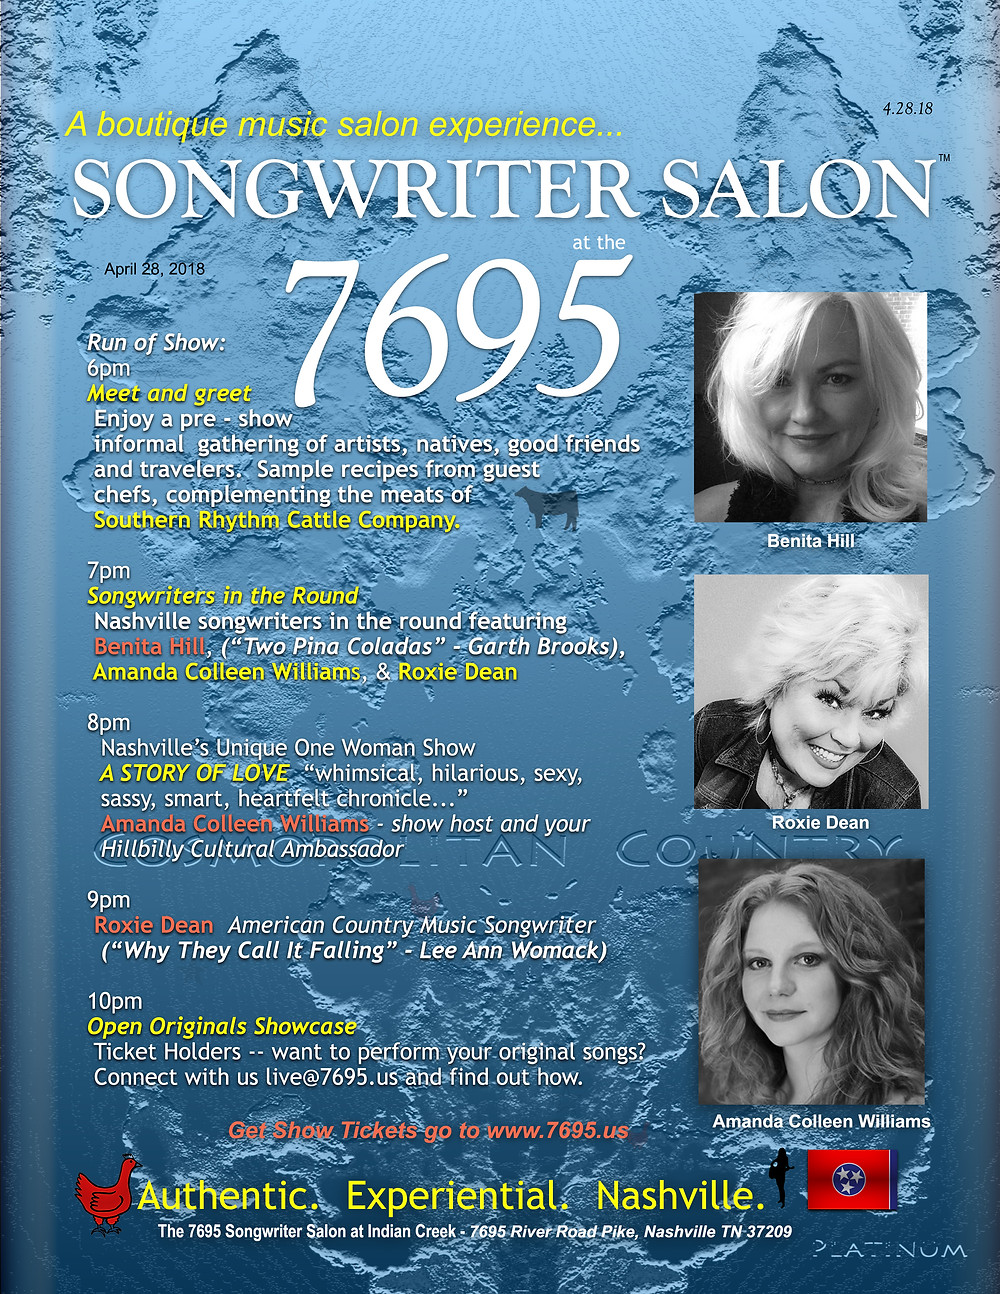 Songwriter Salon at the 7695 April 28, 2018 Benita Hill, Roxie Dean, Amanda Colleen Williams